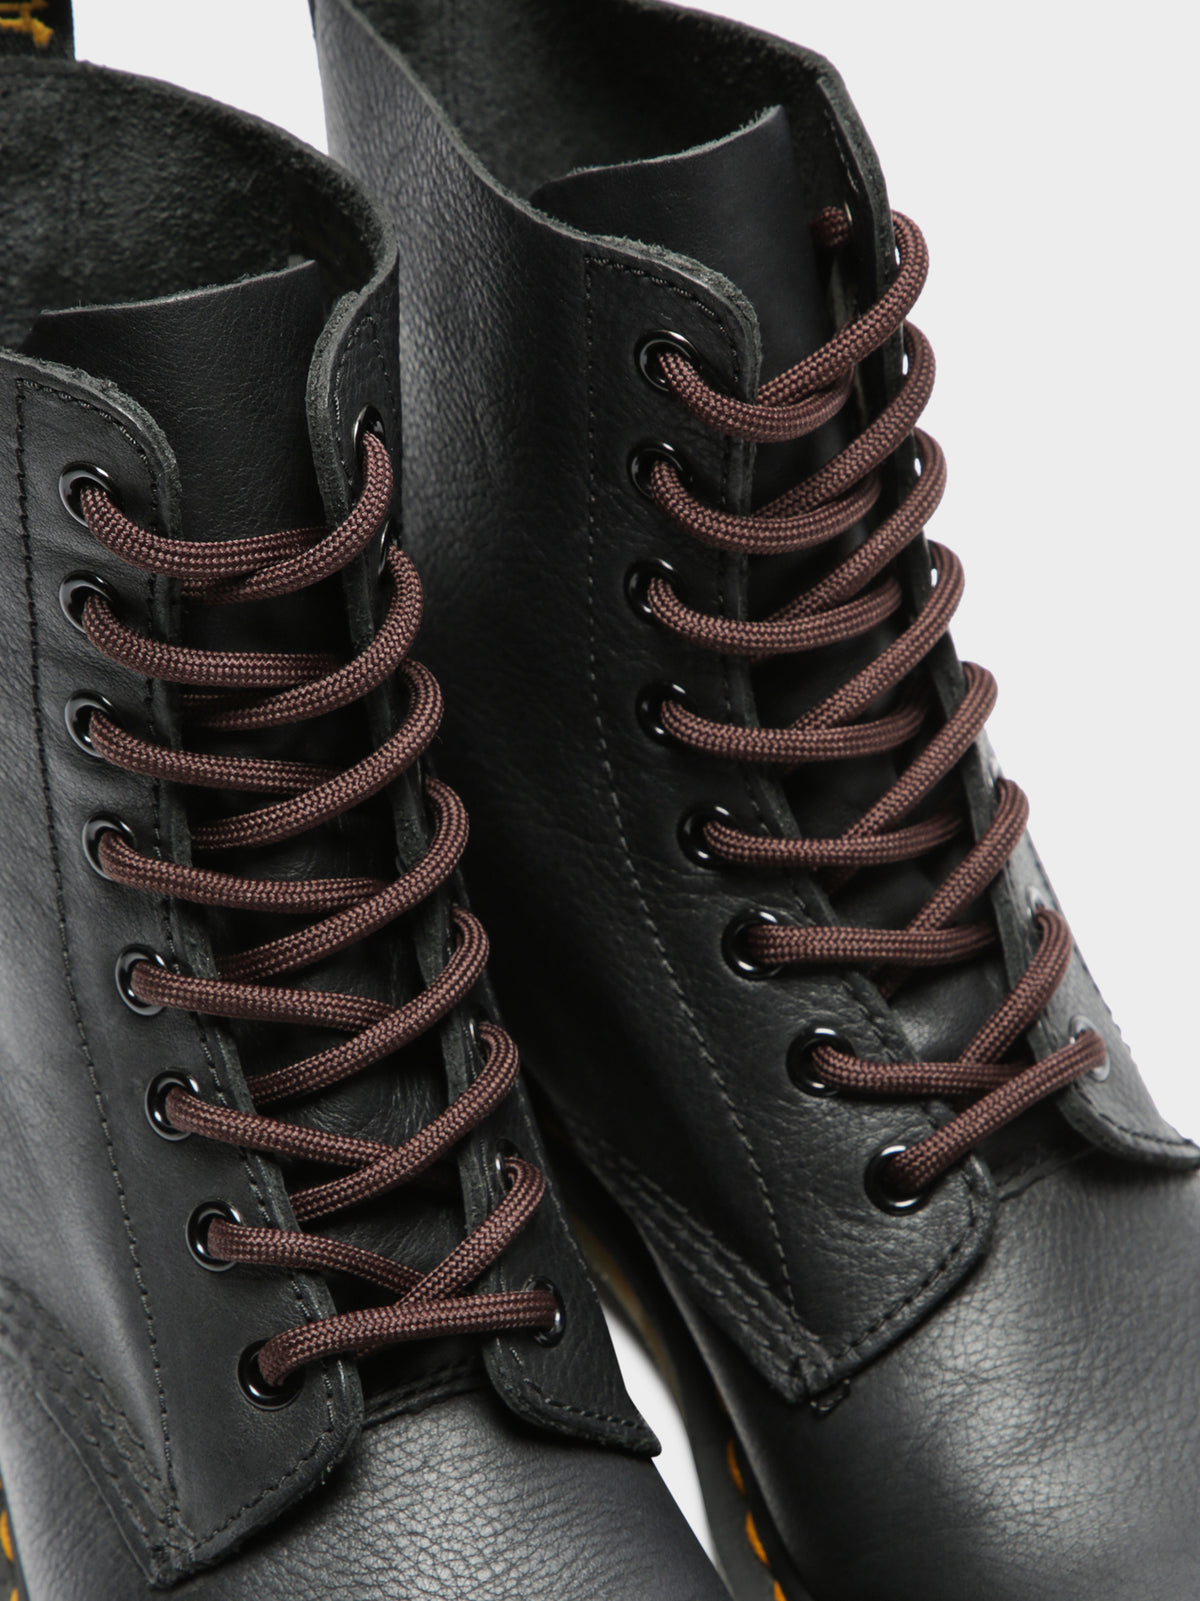 8-10 Eye Laces in Brown